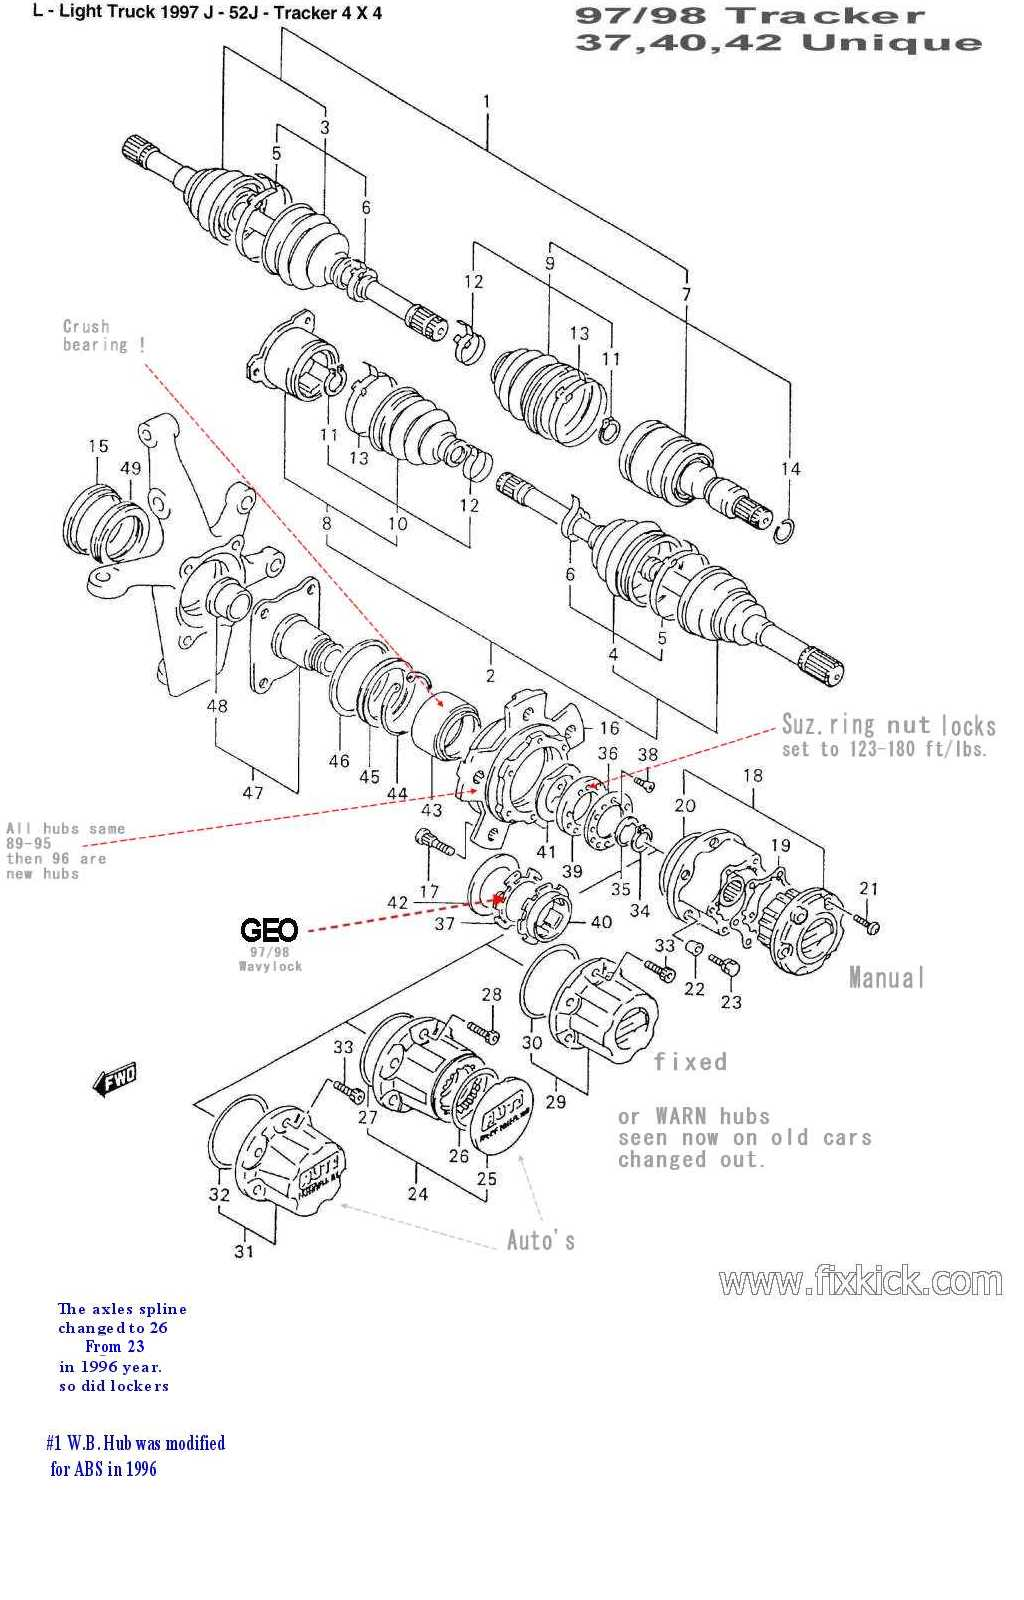 Buy Parts on 4 way switch schematic diagram